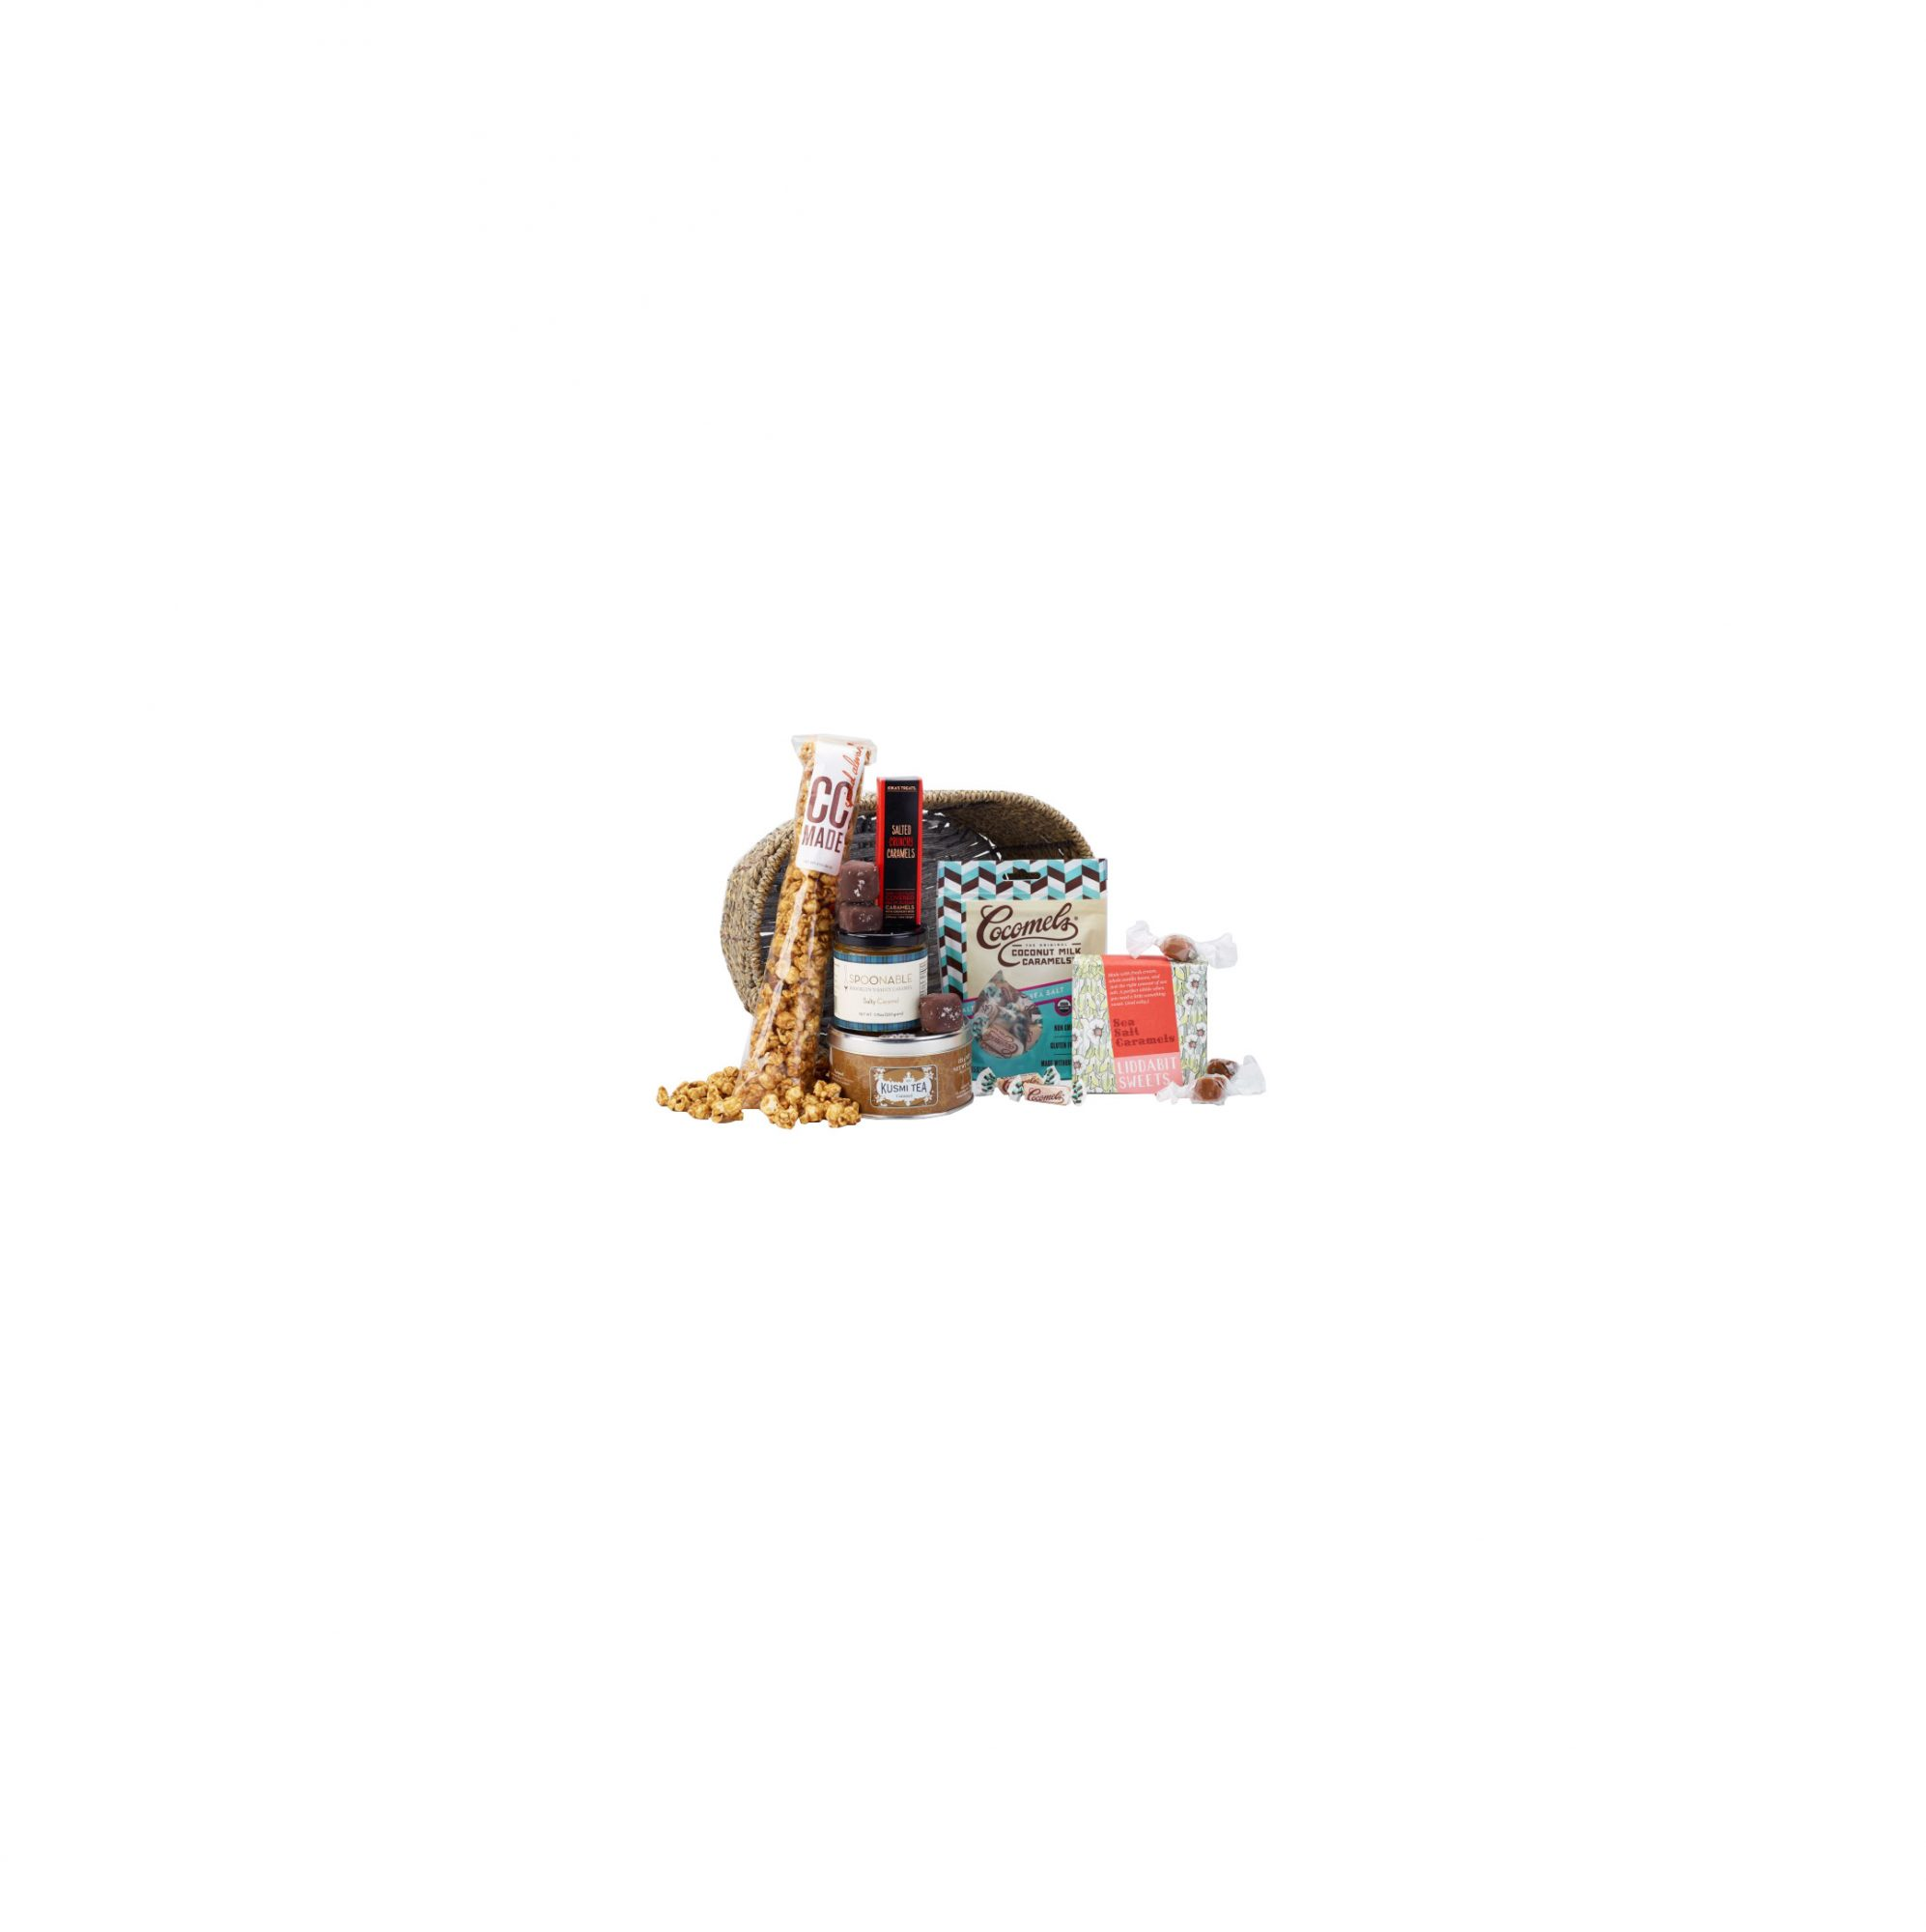 Gift baskets and sets for everyone on your list real simple for caramel lovers negle Images